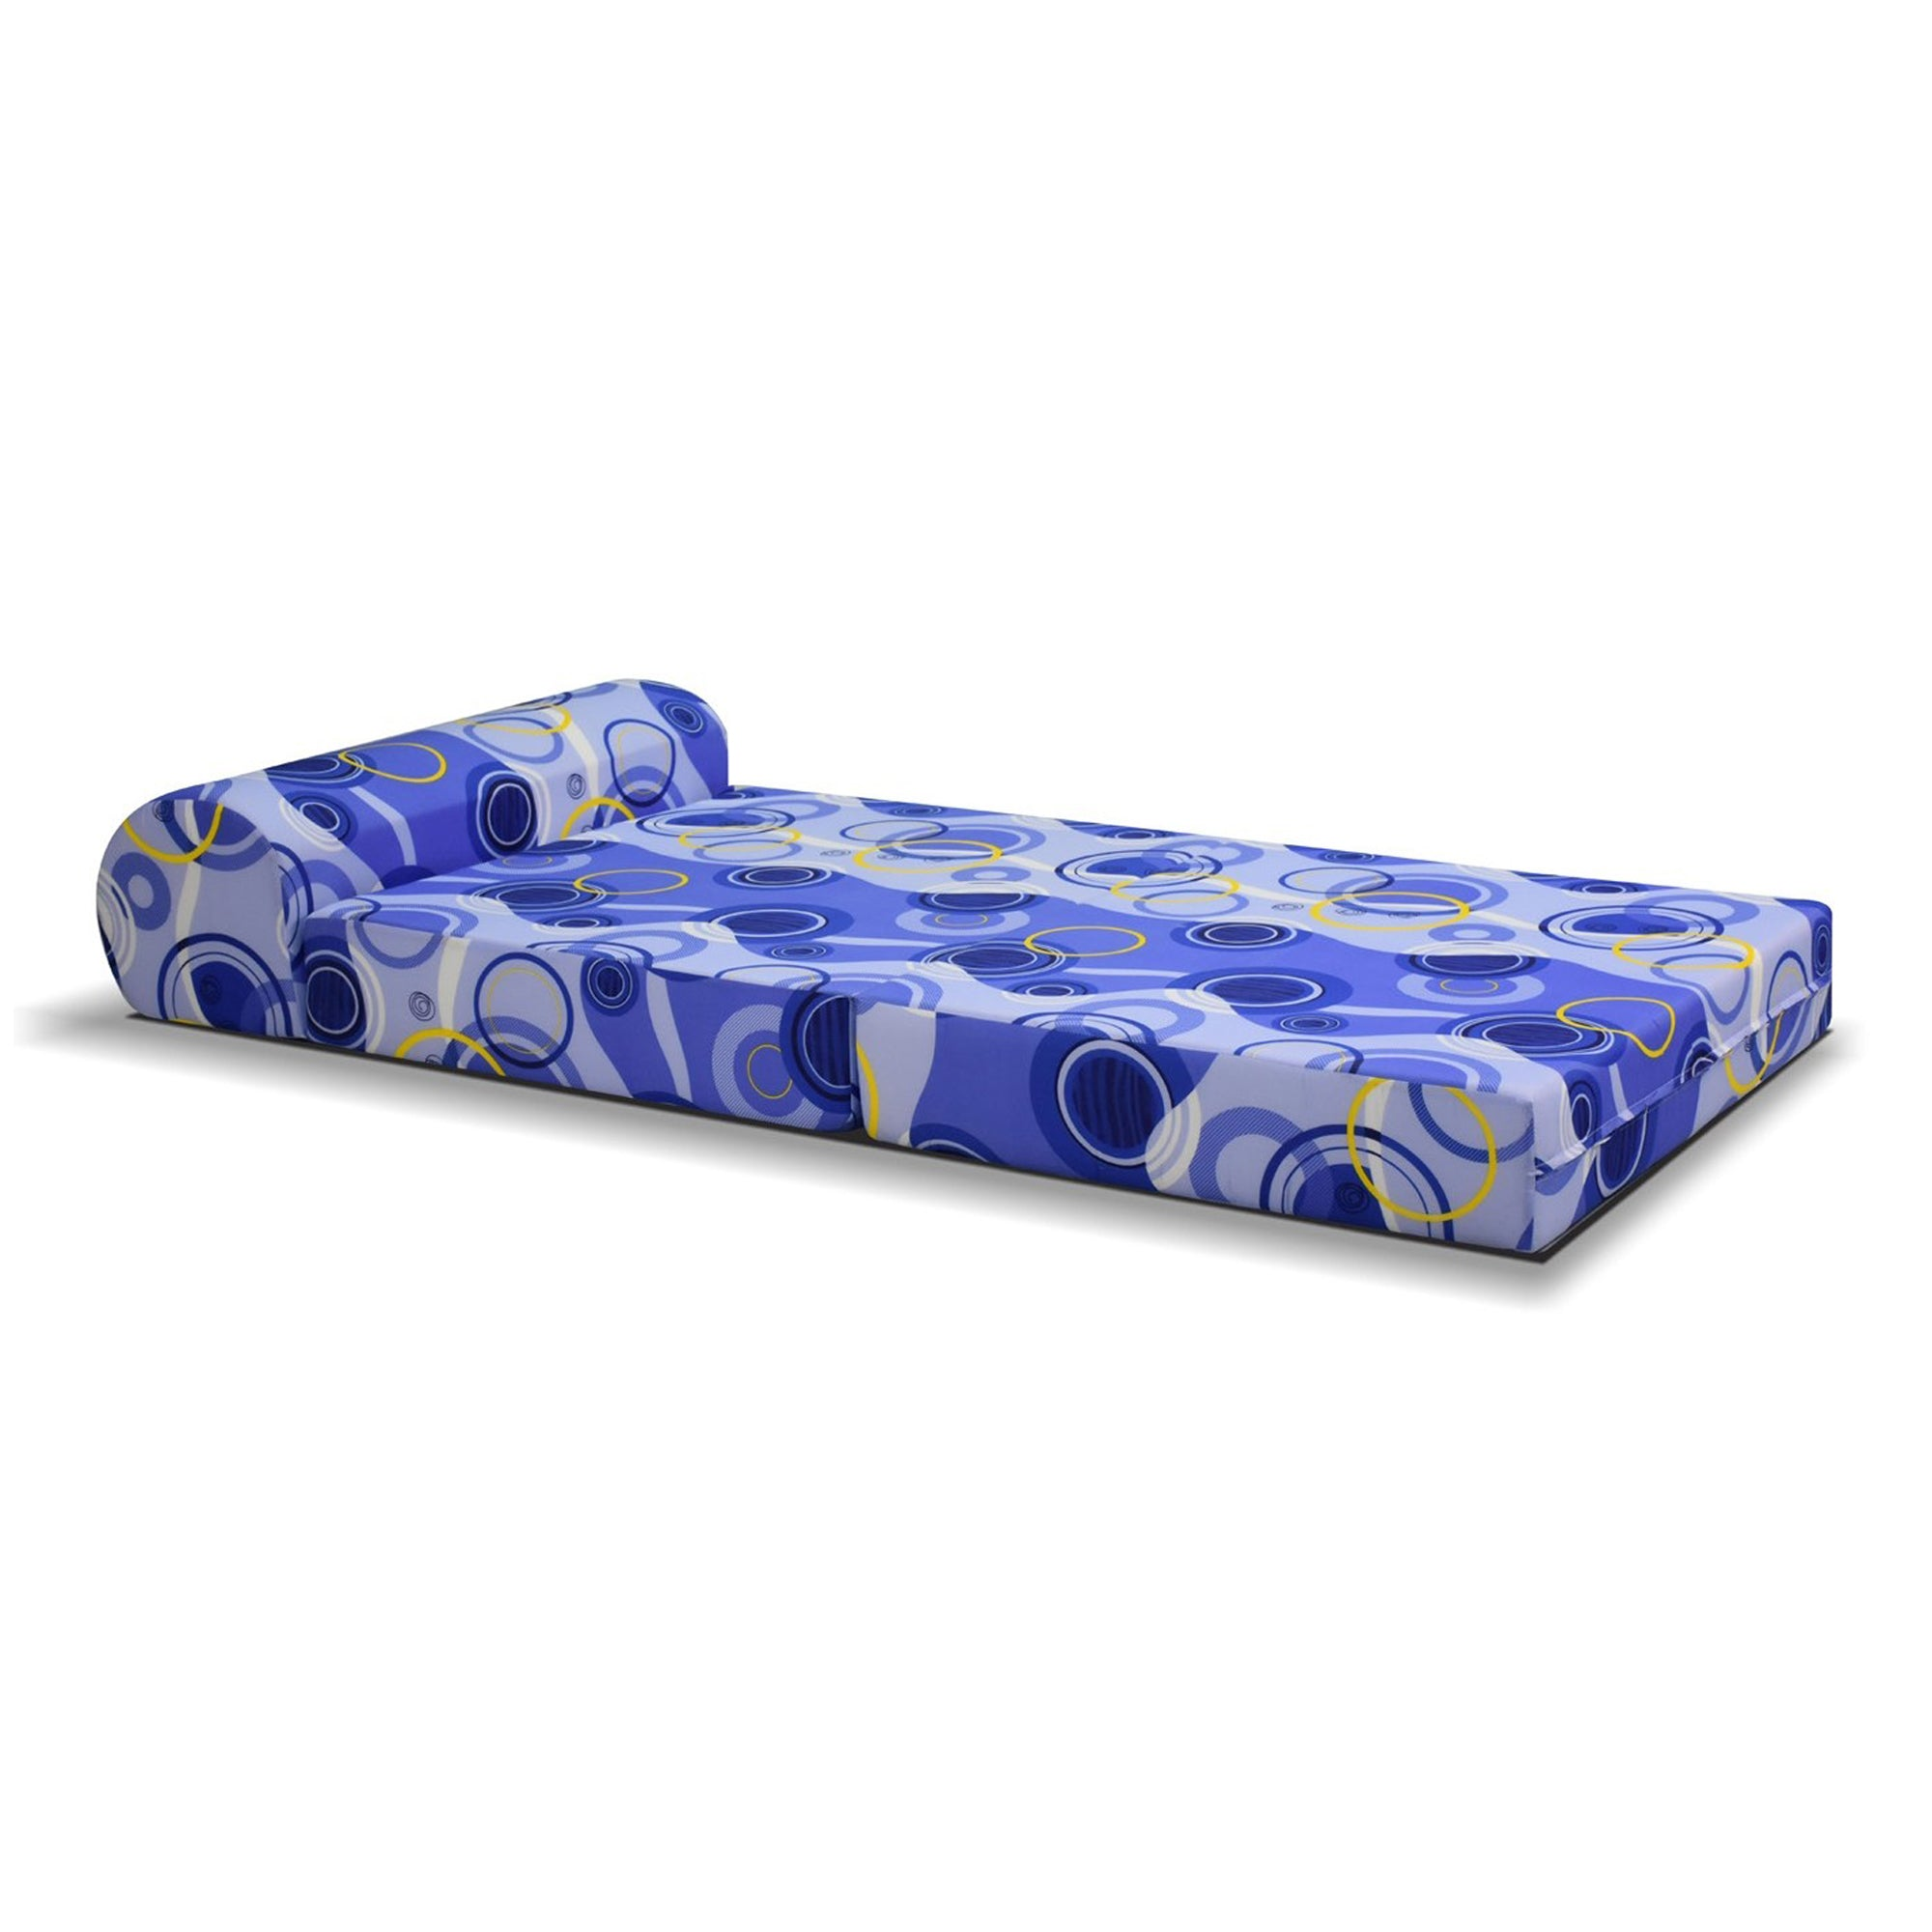 Viro Sofa Bed 3.5 Feet Super Single (Blue)